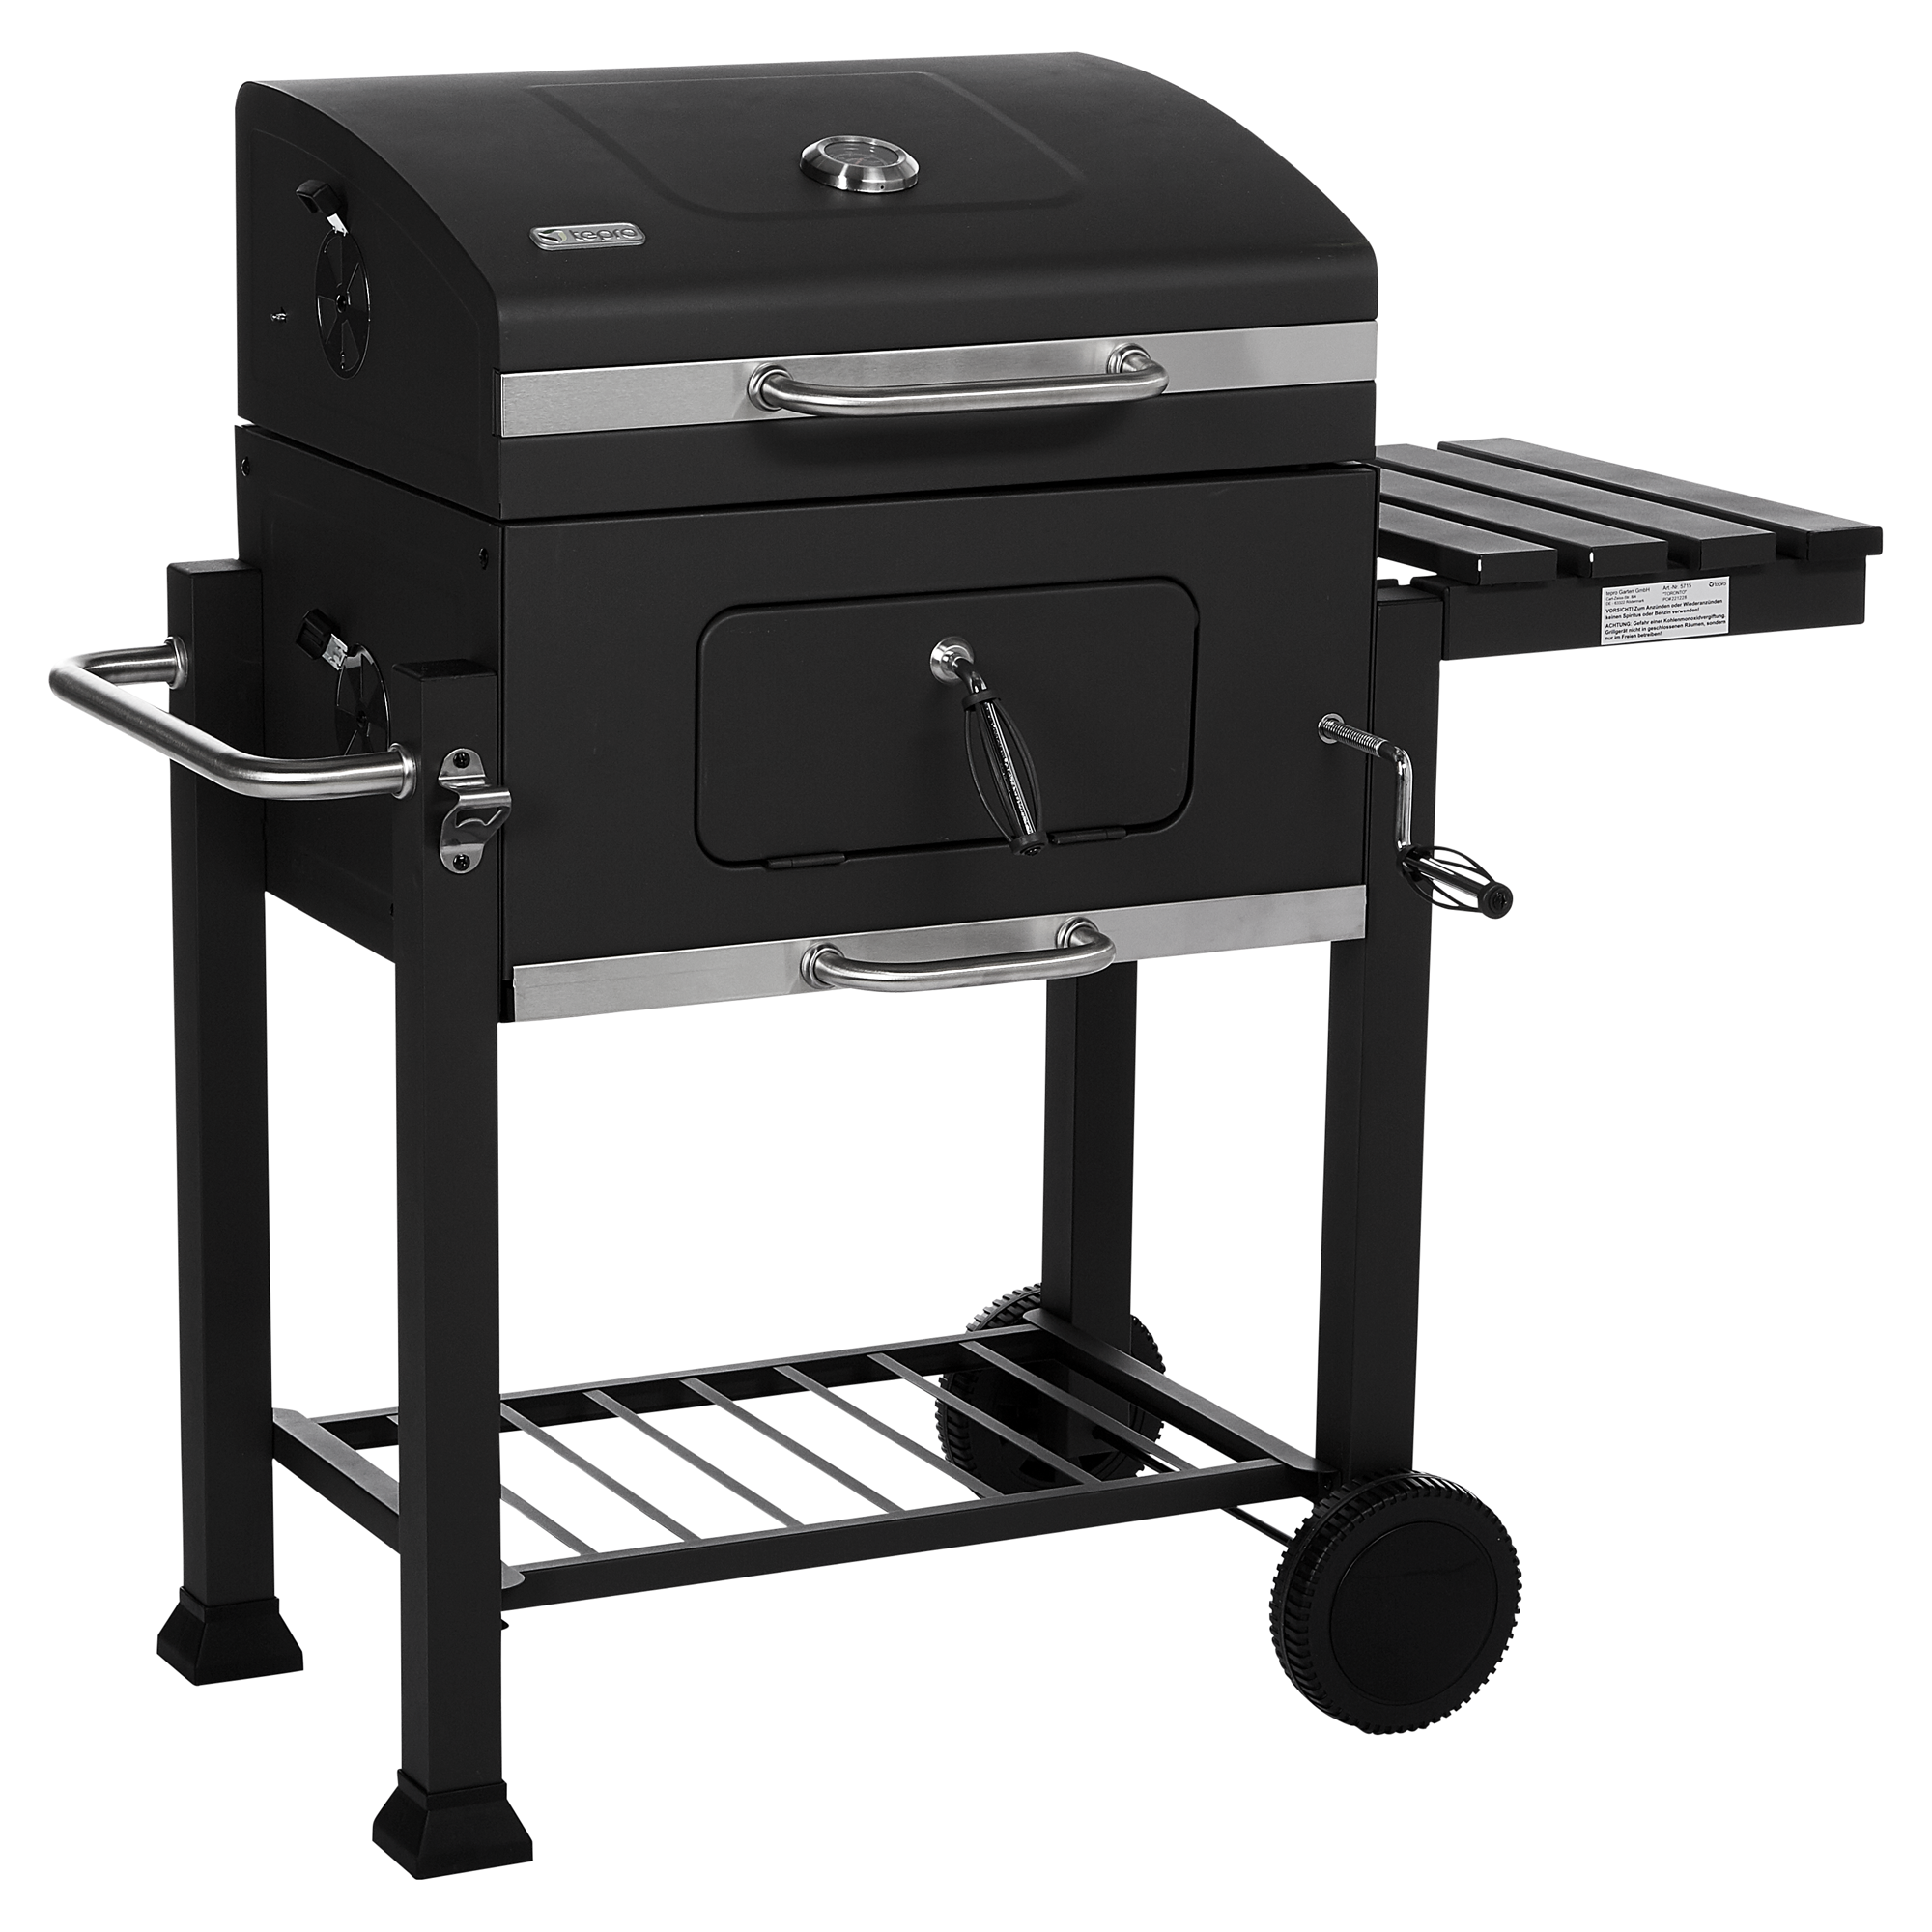 grillwagen selber bauen pplar klasen kohlegrill with grillwagen selber bauen beautiful. Black Bedroom Furniture Sets. Home Design Ideas